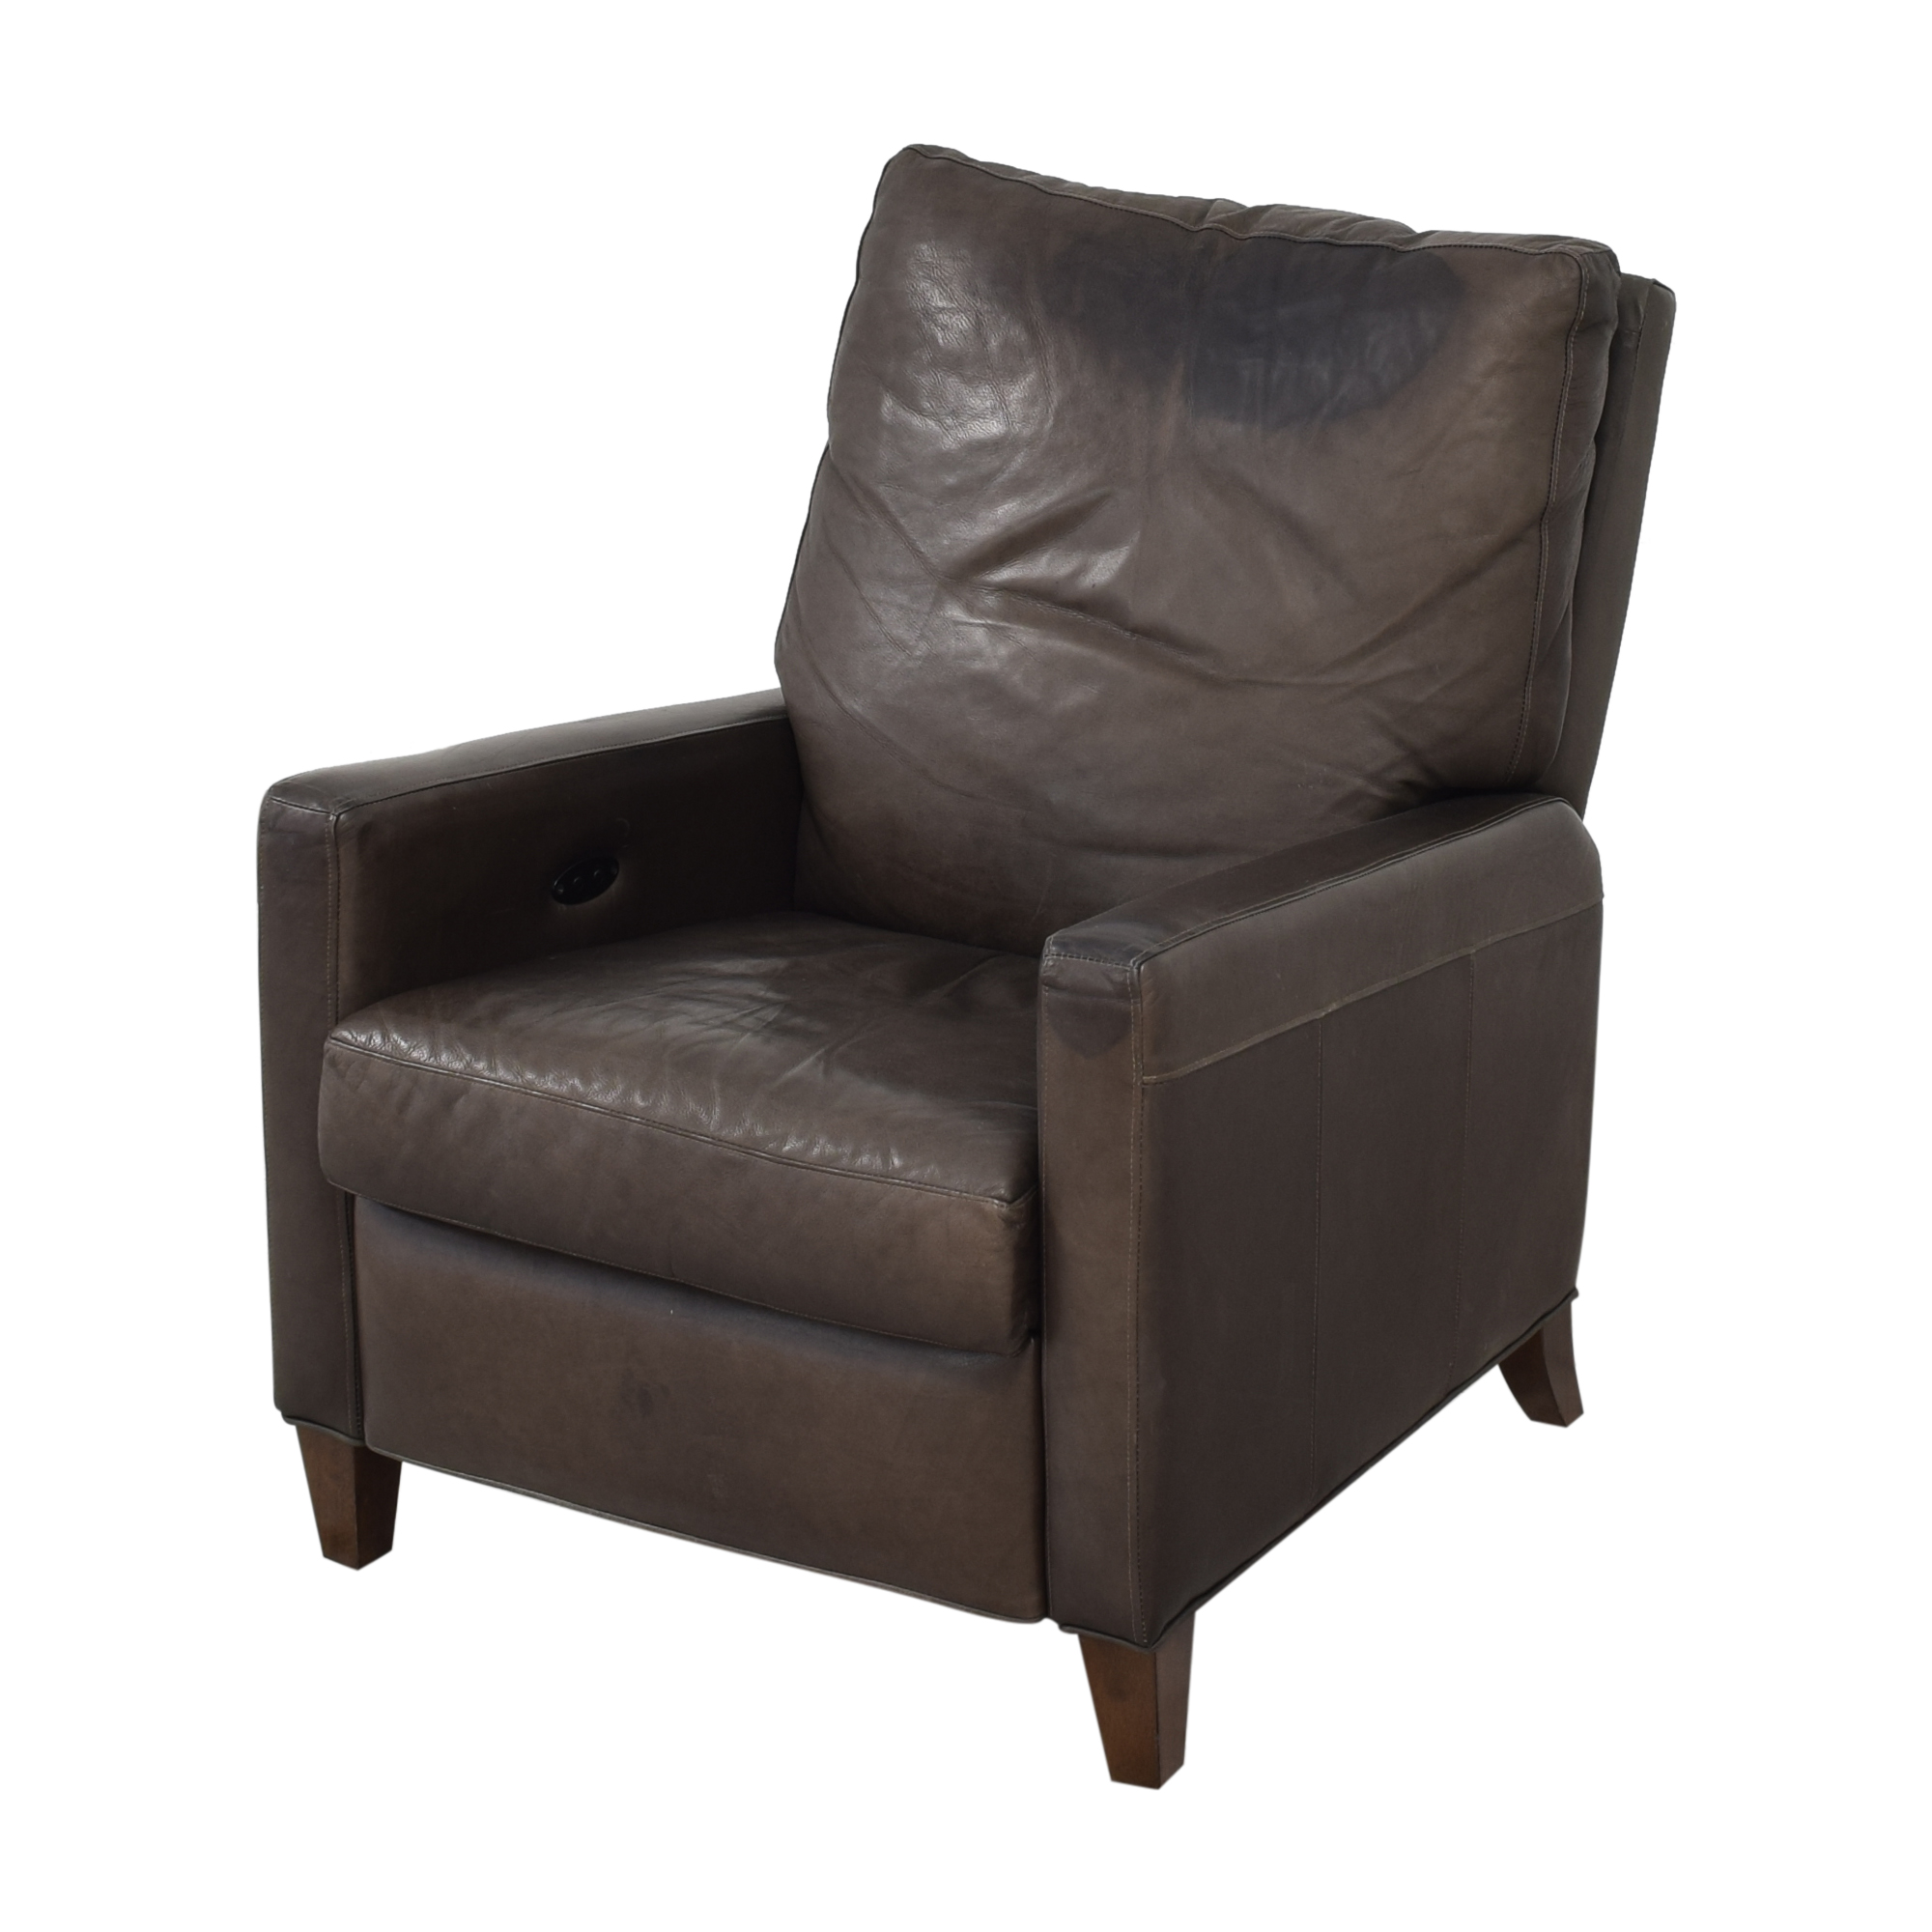 Michael Philip Michael Philip Custom Recliner second hand